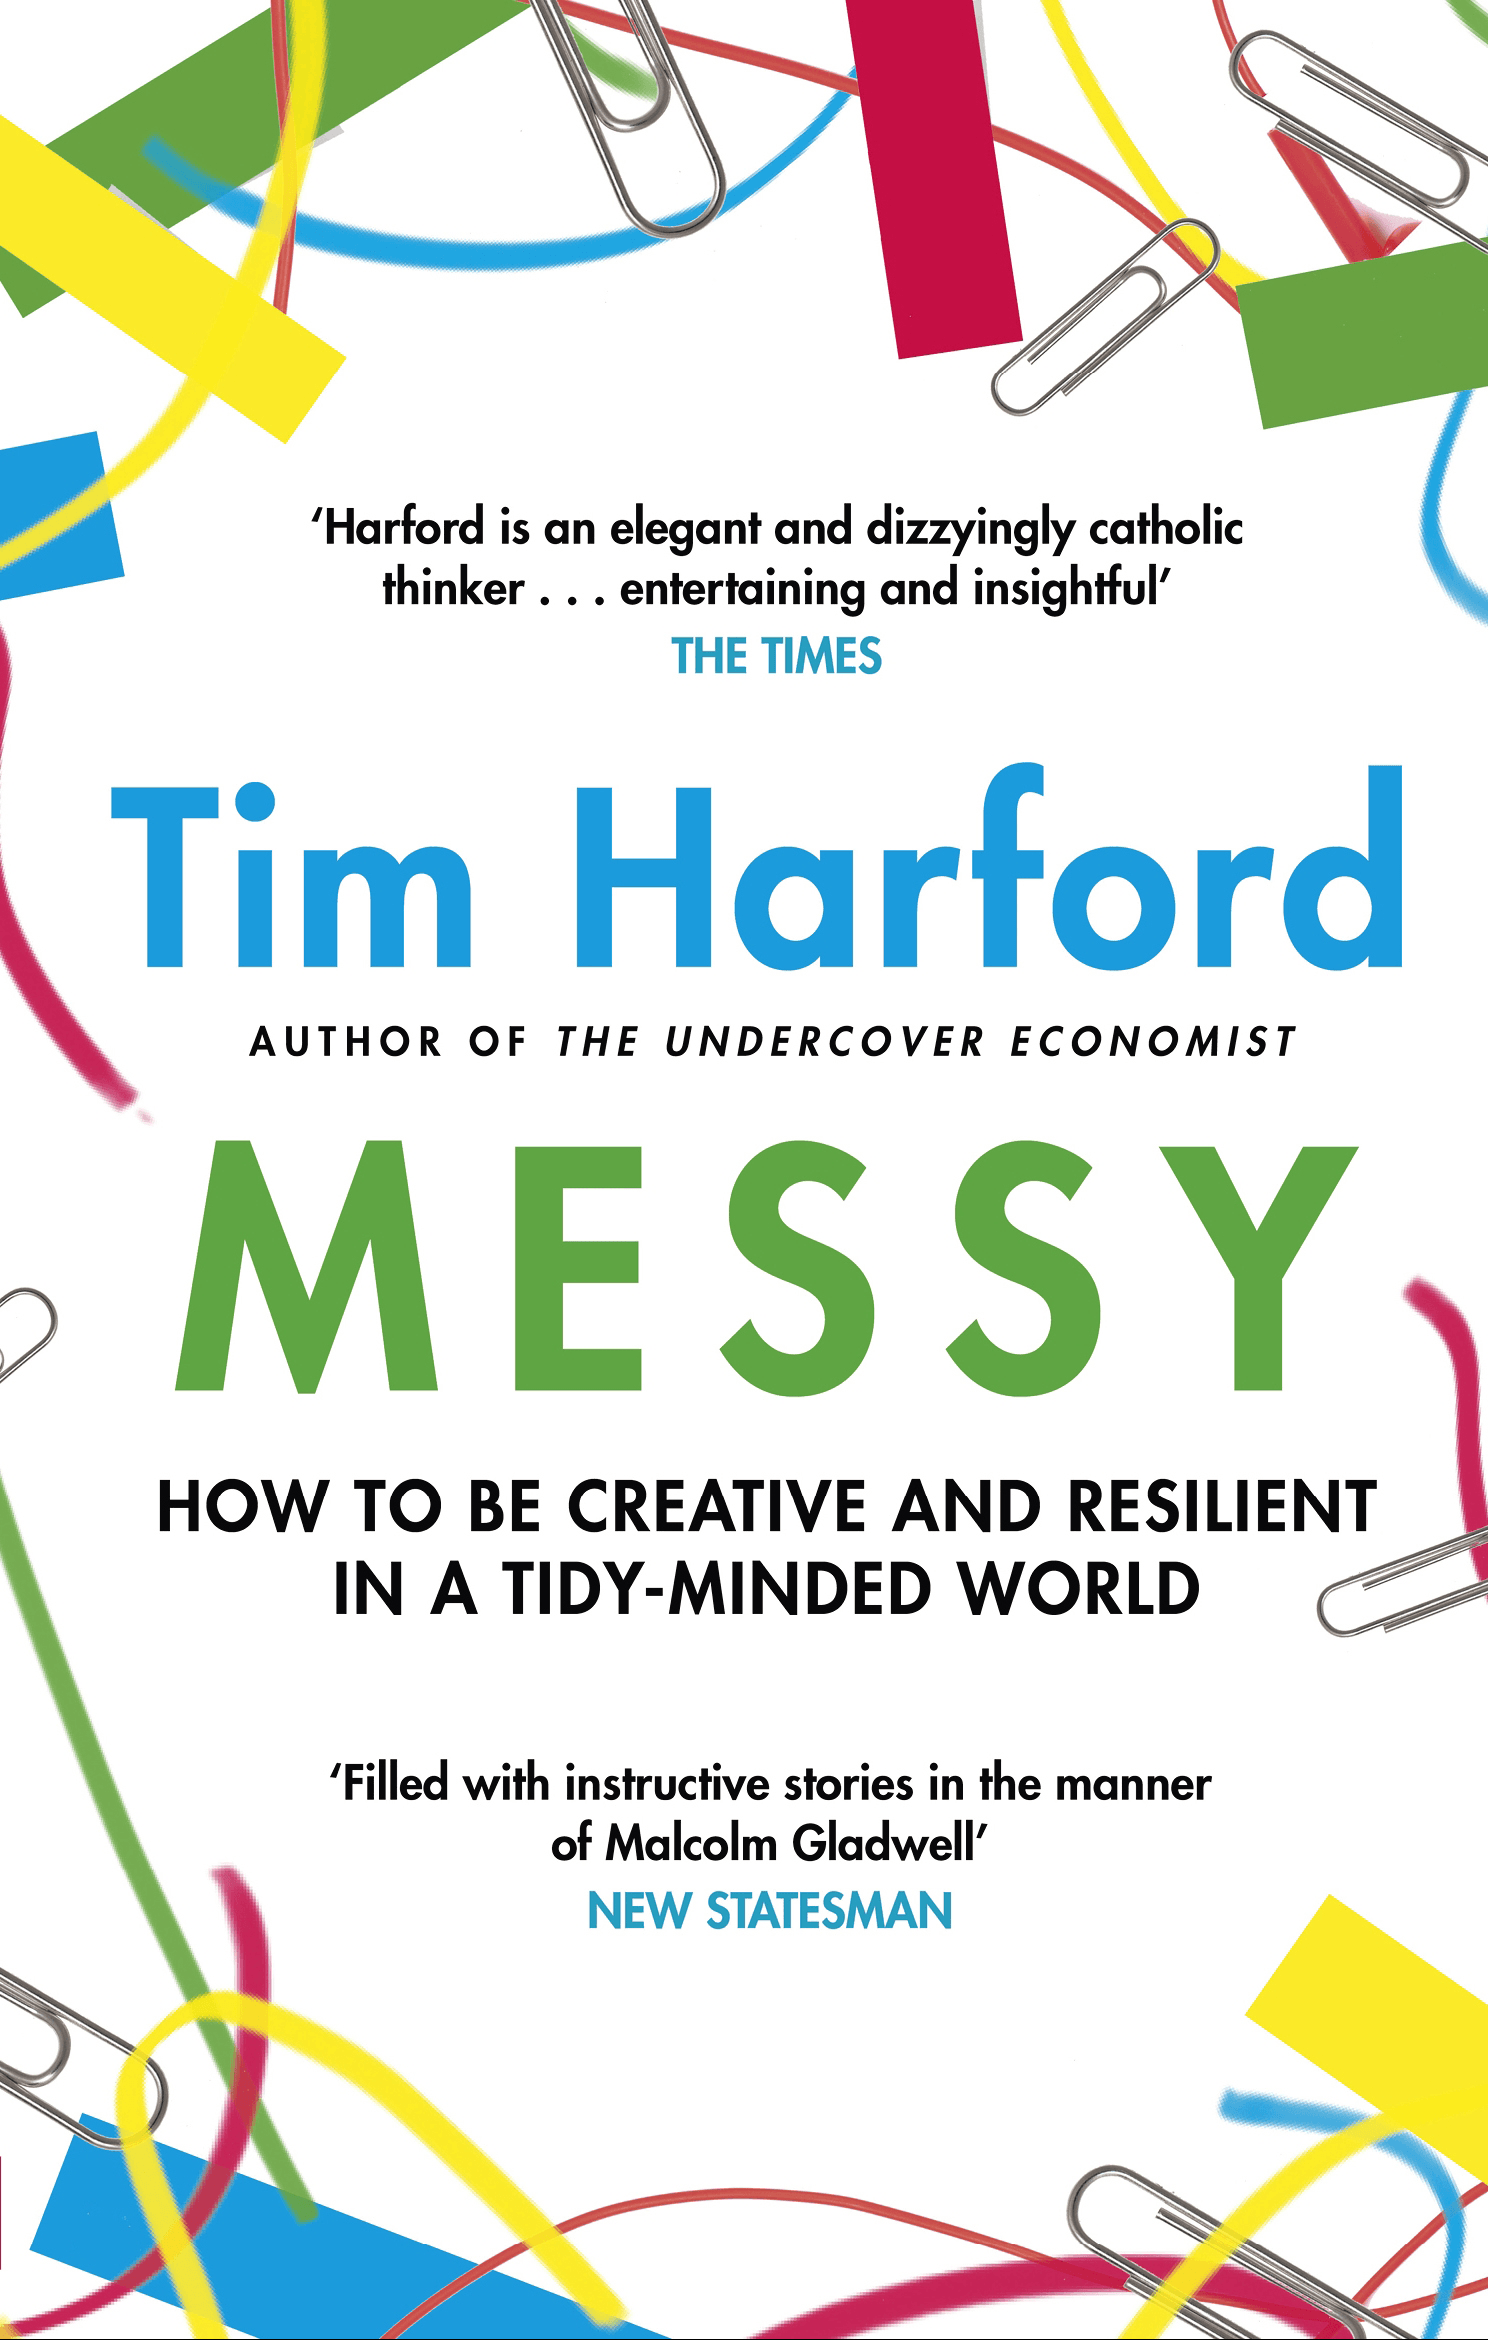 Messy – How to be Creative and Resilient in a Tidy-minded World